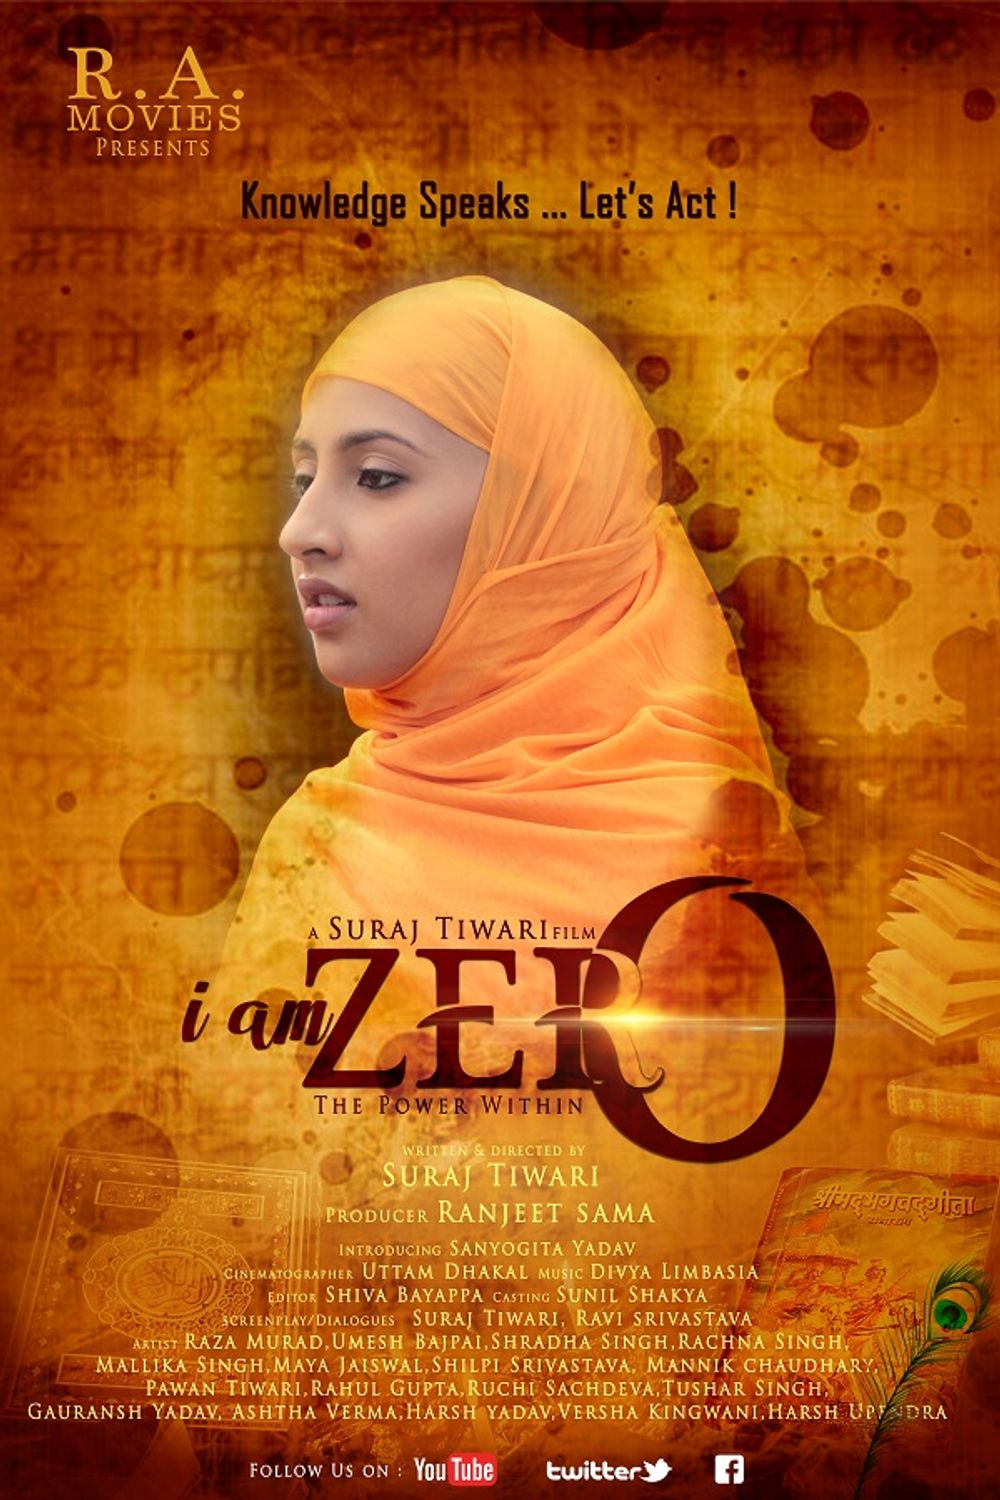 I Am Zero The Power Within (2019) Hindi 480p |  720p HDRip x264  200MB |1.3GB Download